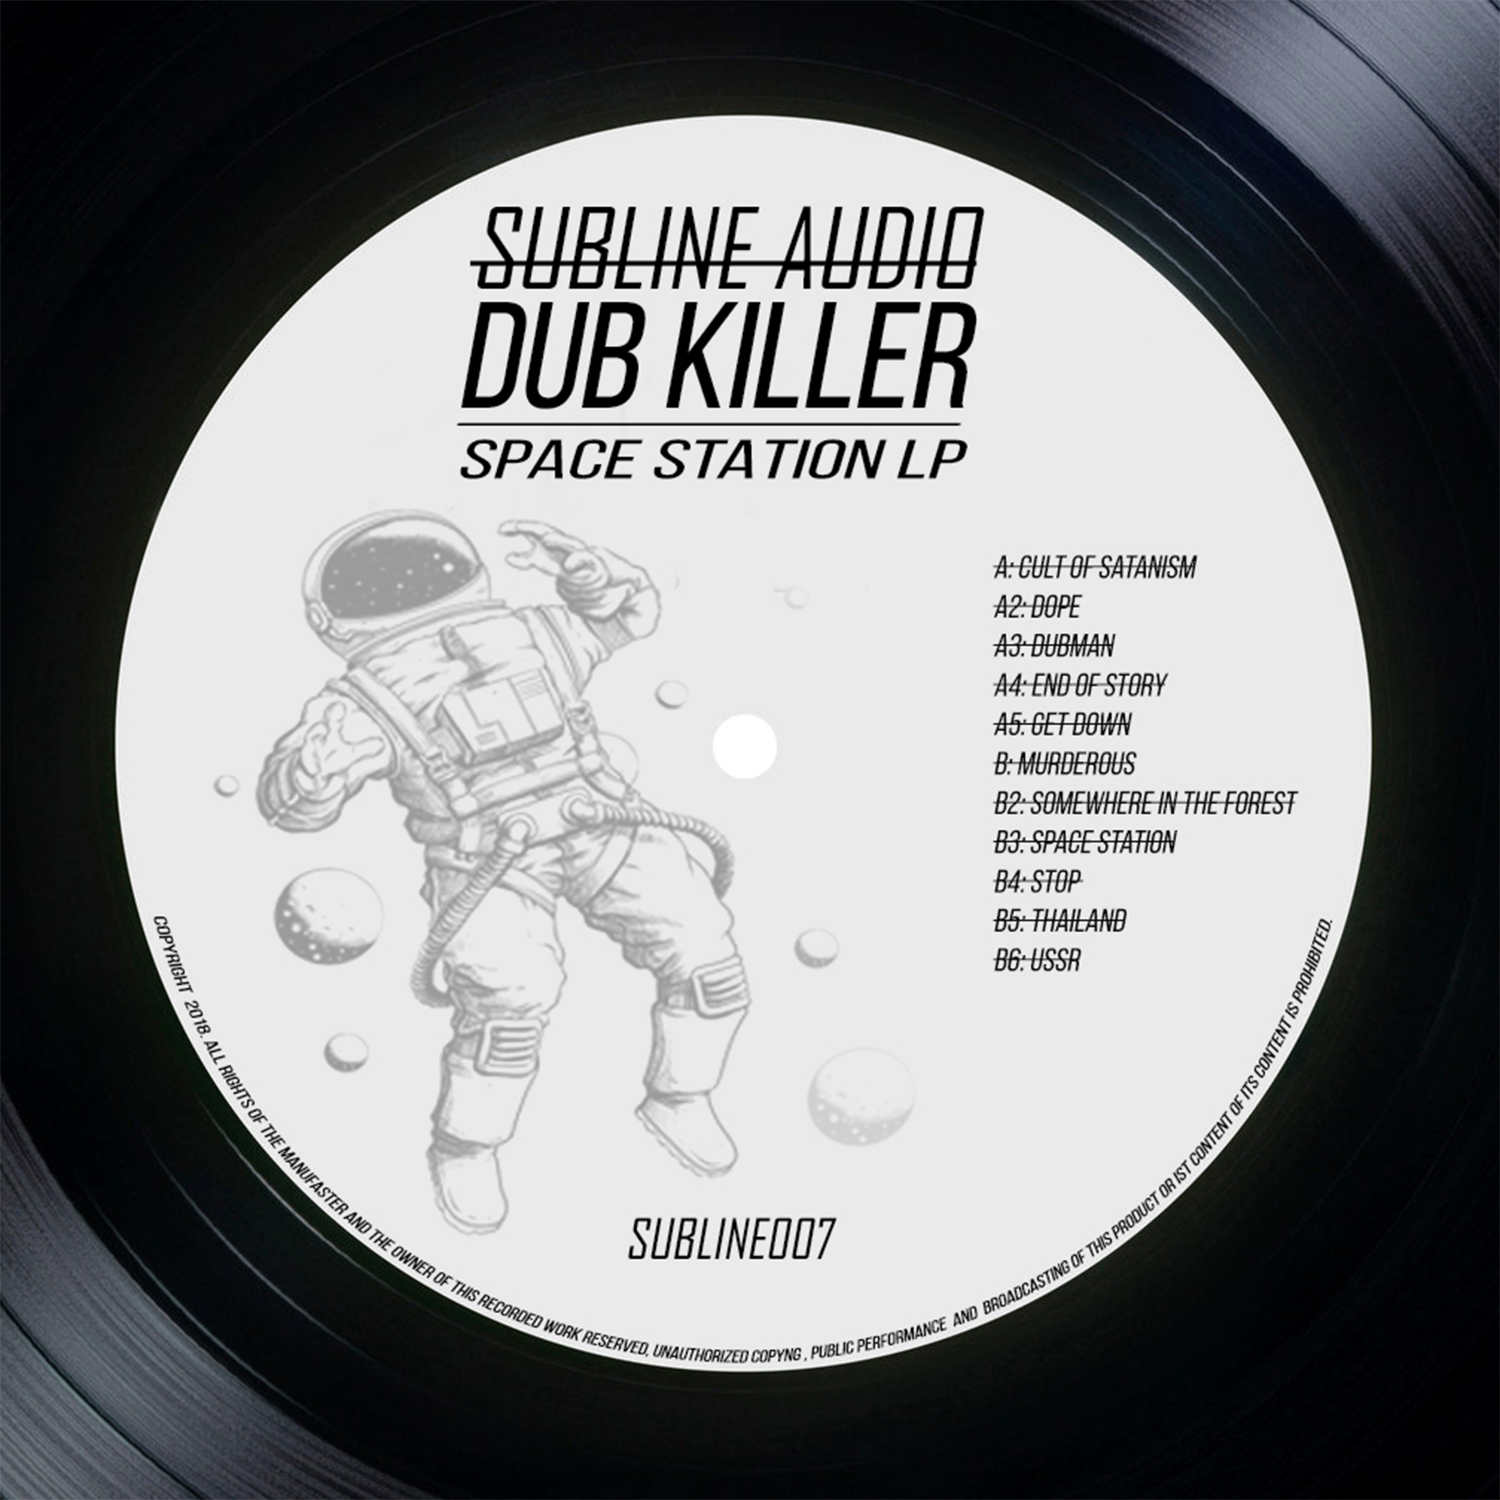 Dub Killer - Cult of Satanism (Original Mix)